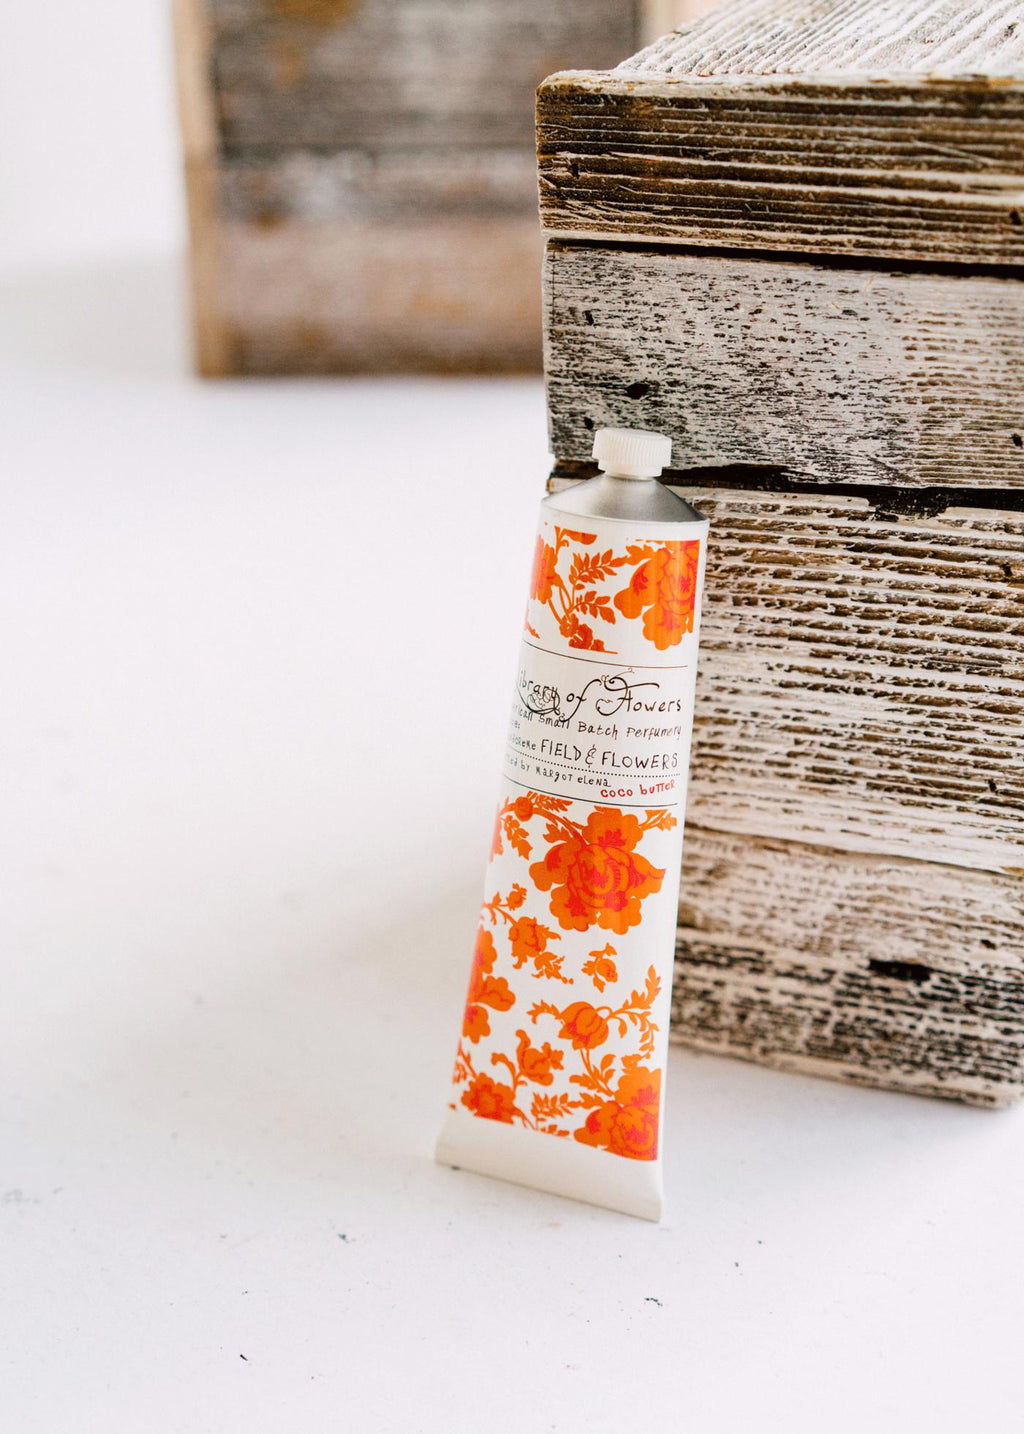 field & flowers handcreme || library of flowers || beautybar